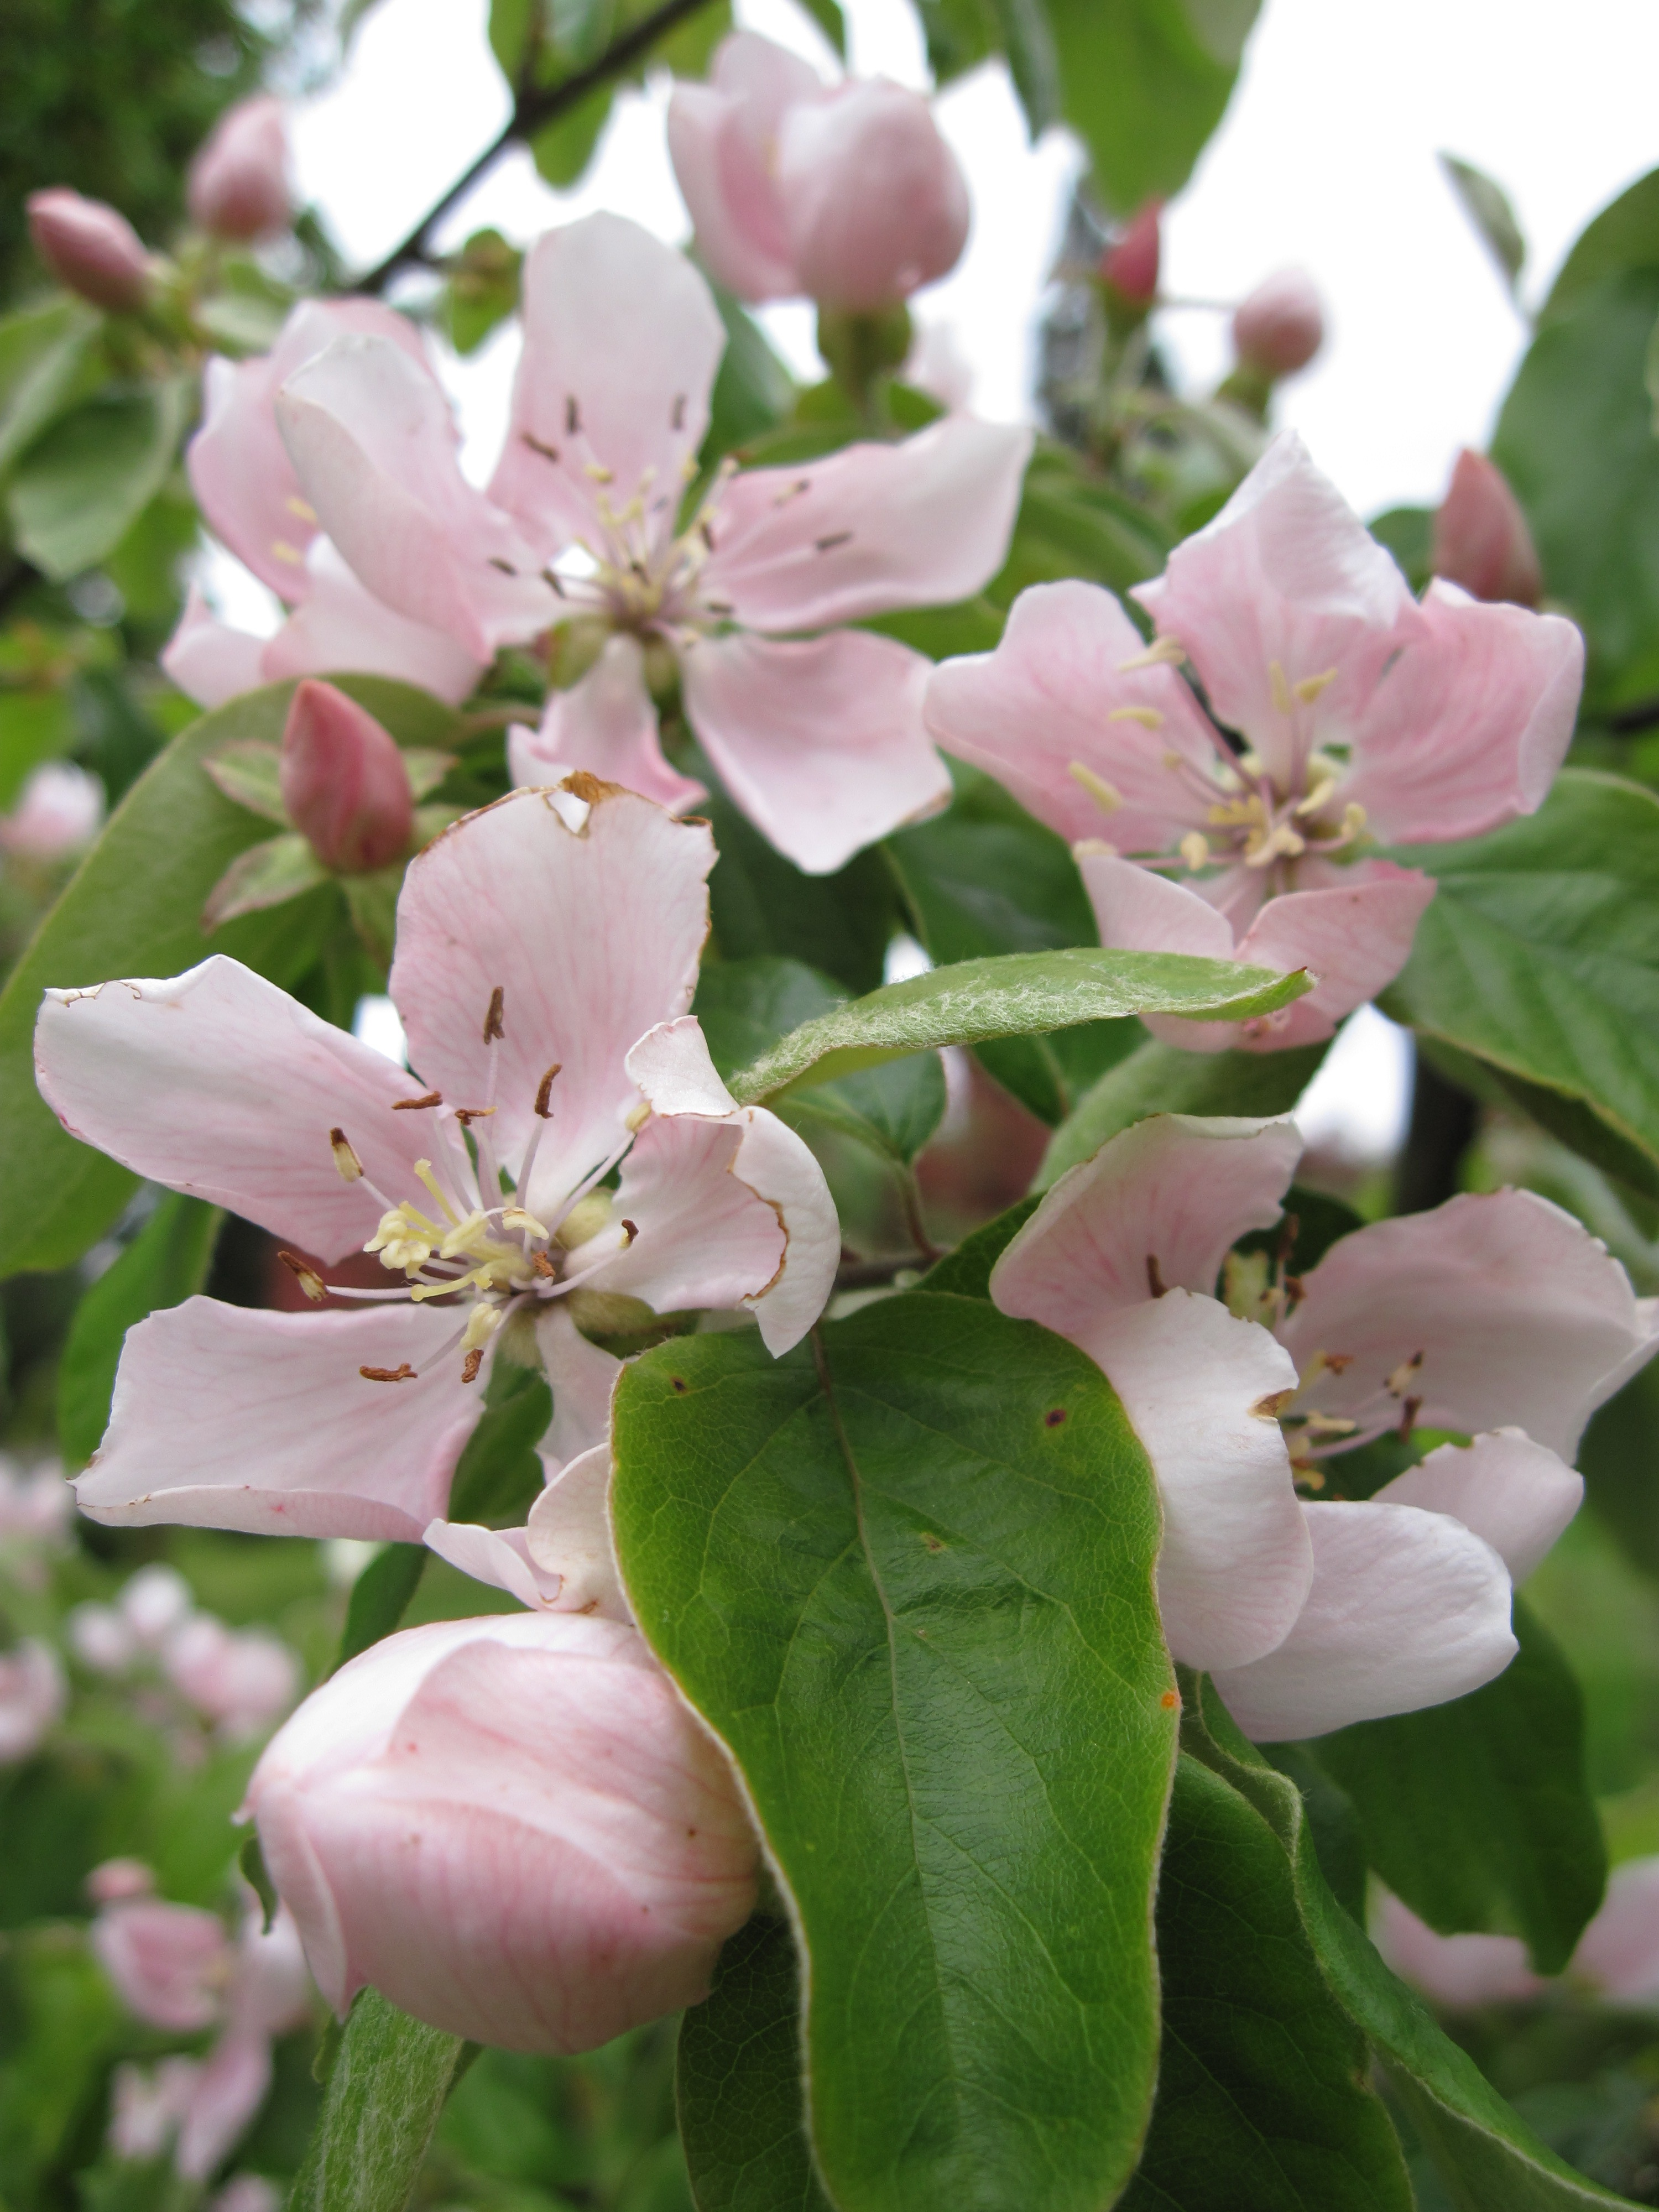 A Quince Essential Fruit - How to Grow Quince Trees